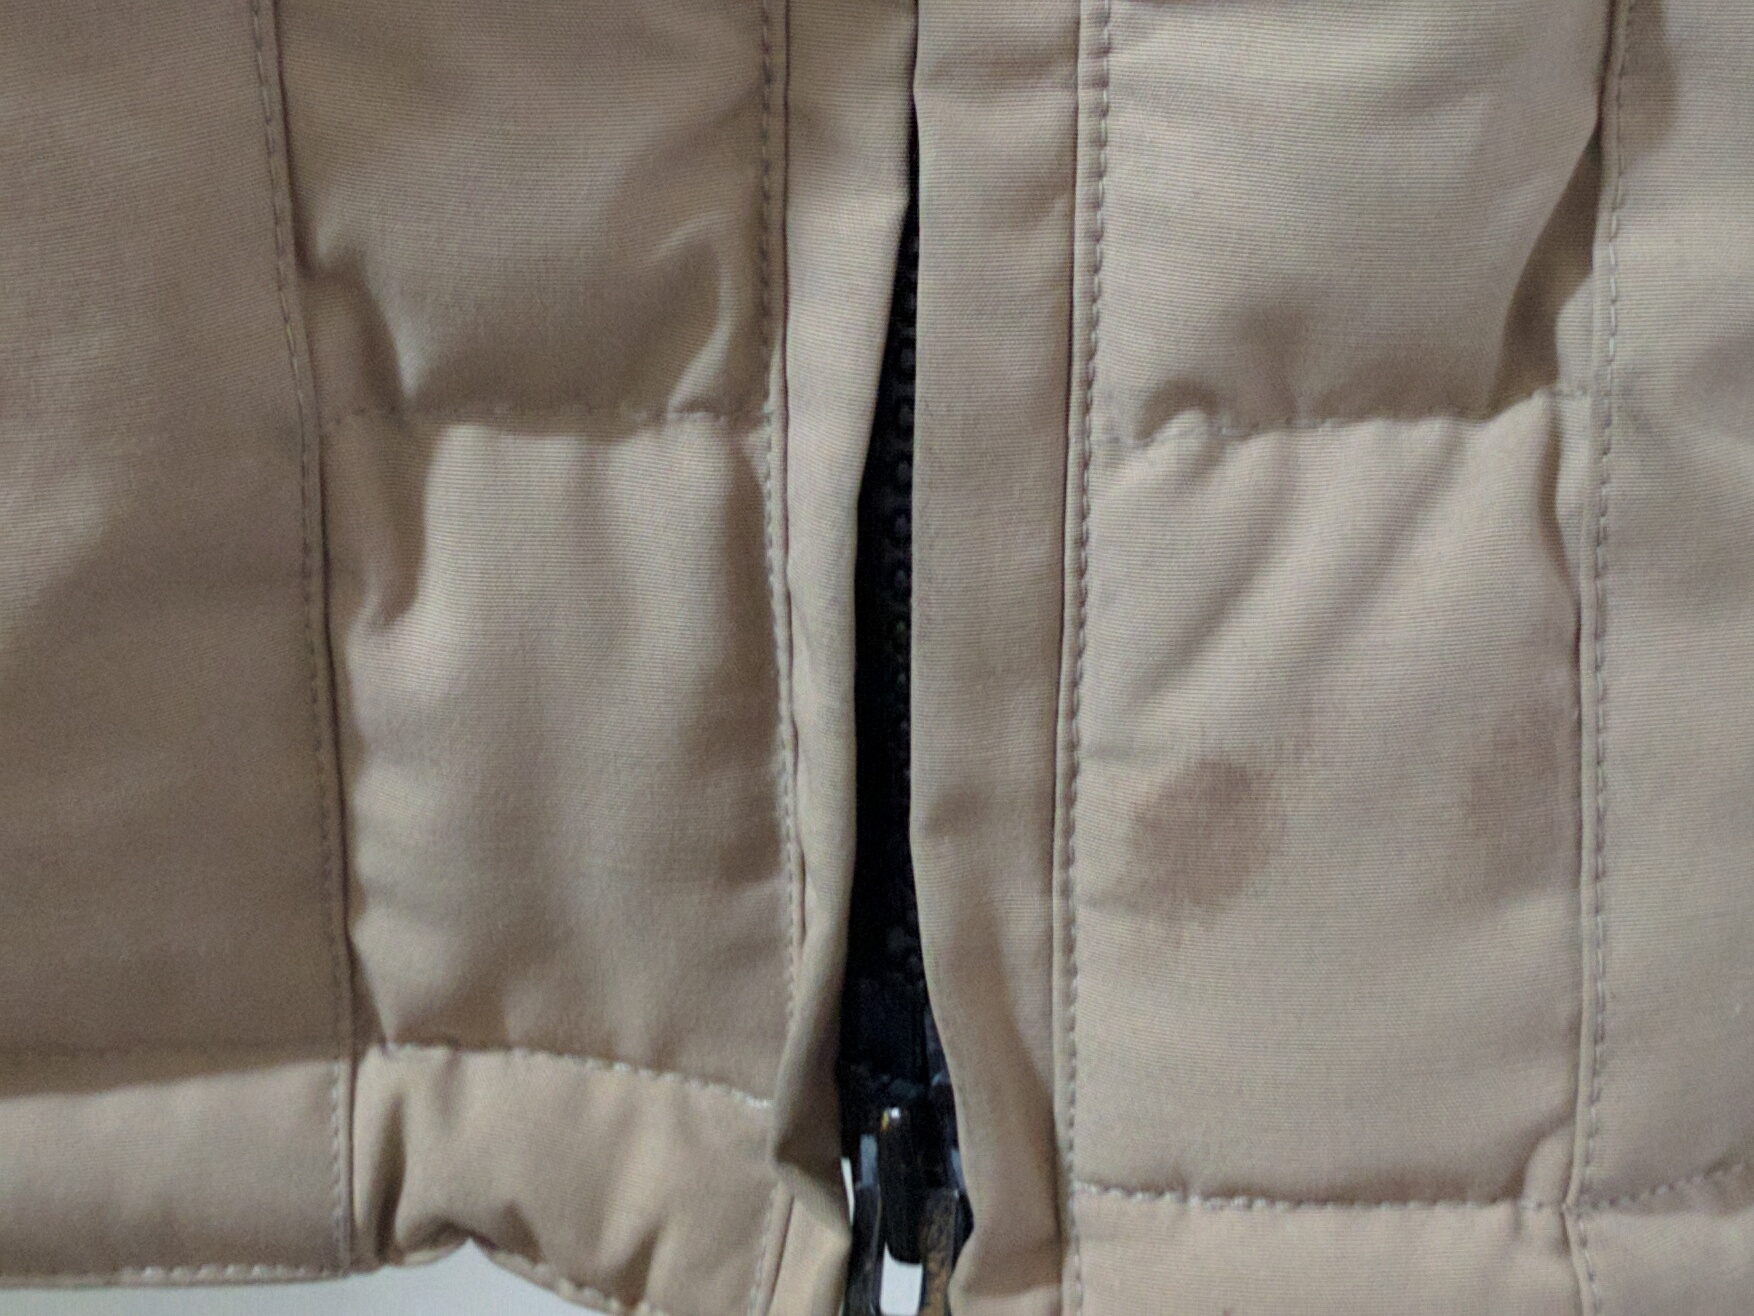 Canada Goose trillium parka outlet fake - FS] $140 Authentic Canada Goose Women's Solaris Parka, Tan, XL ...